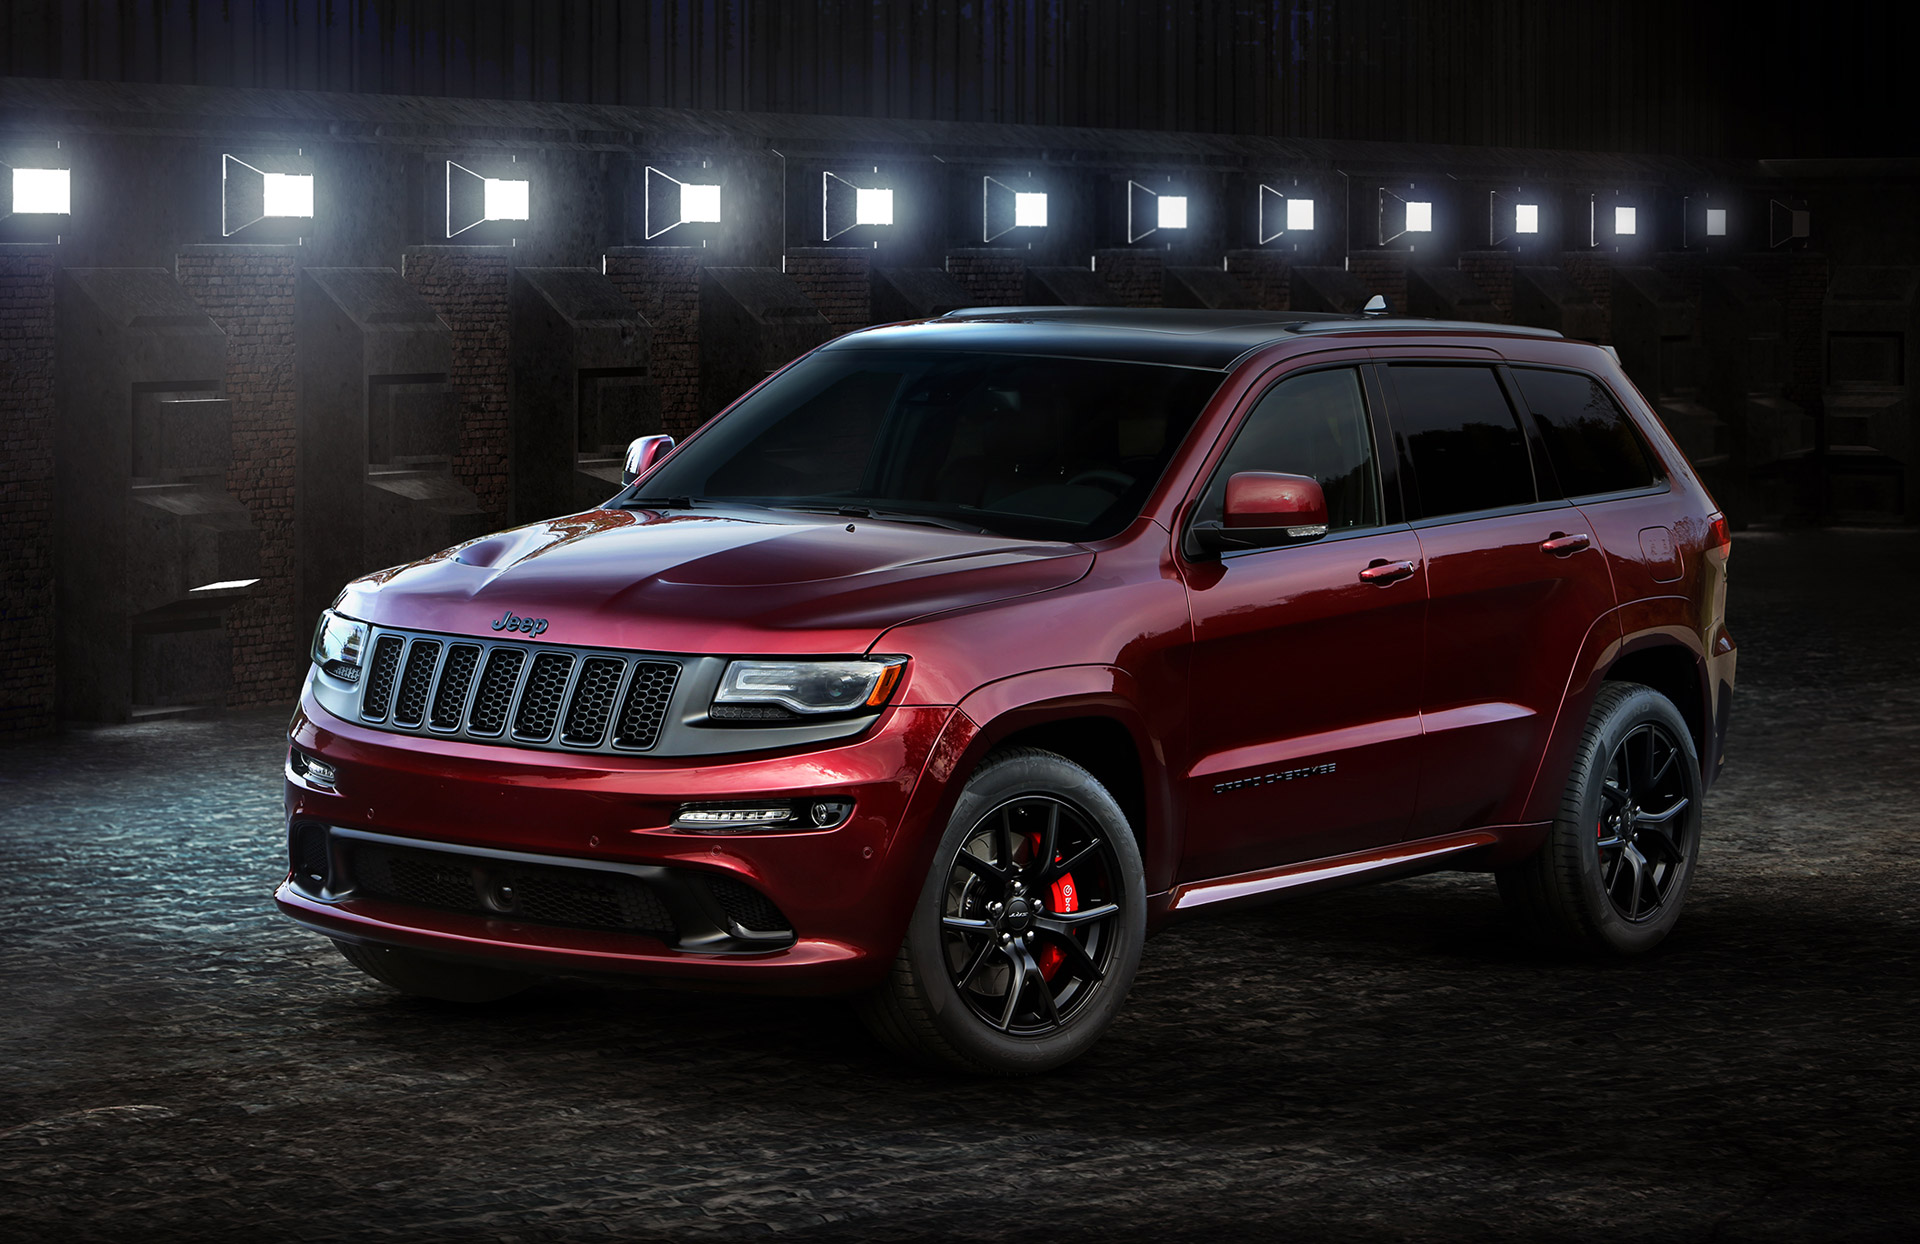 2016 jeep grand cherokee srt wrangler special editions head to l a auto show. Black Bedroom Furniture Sets. Home Design Ideas